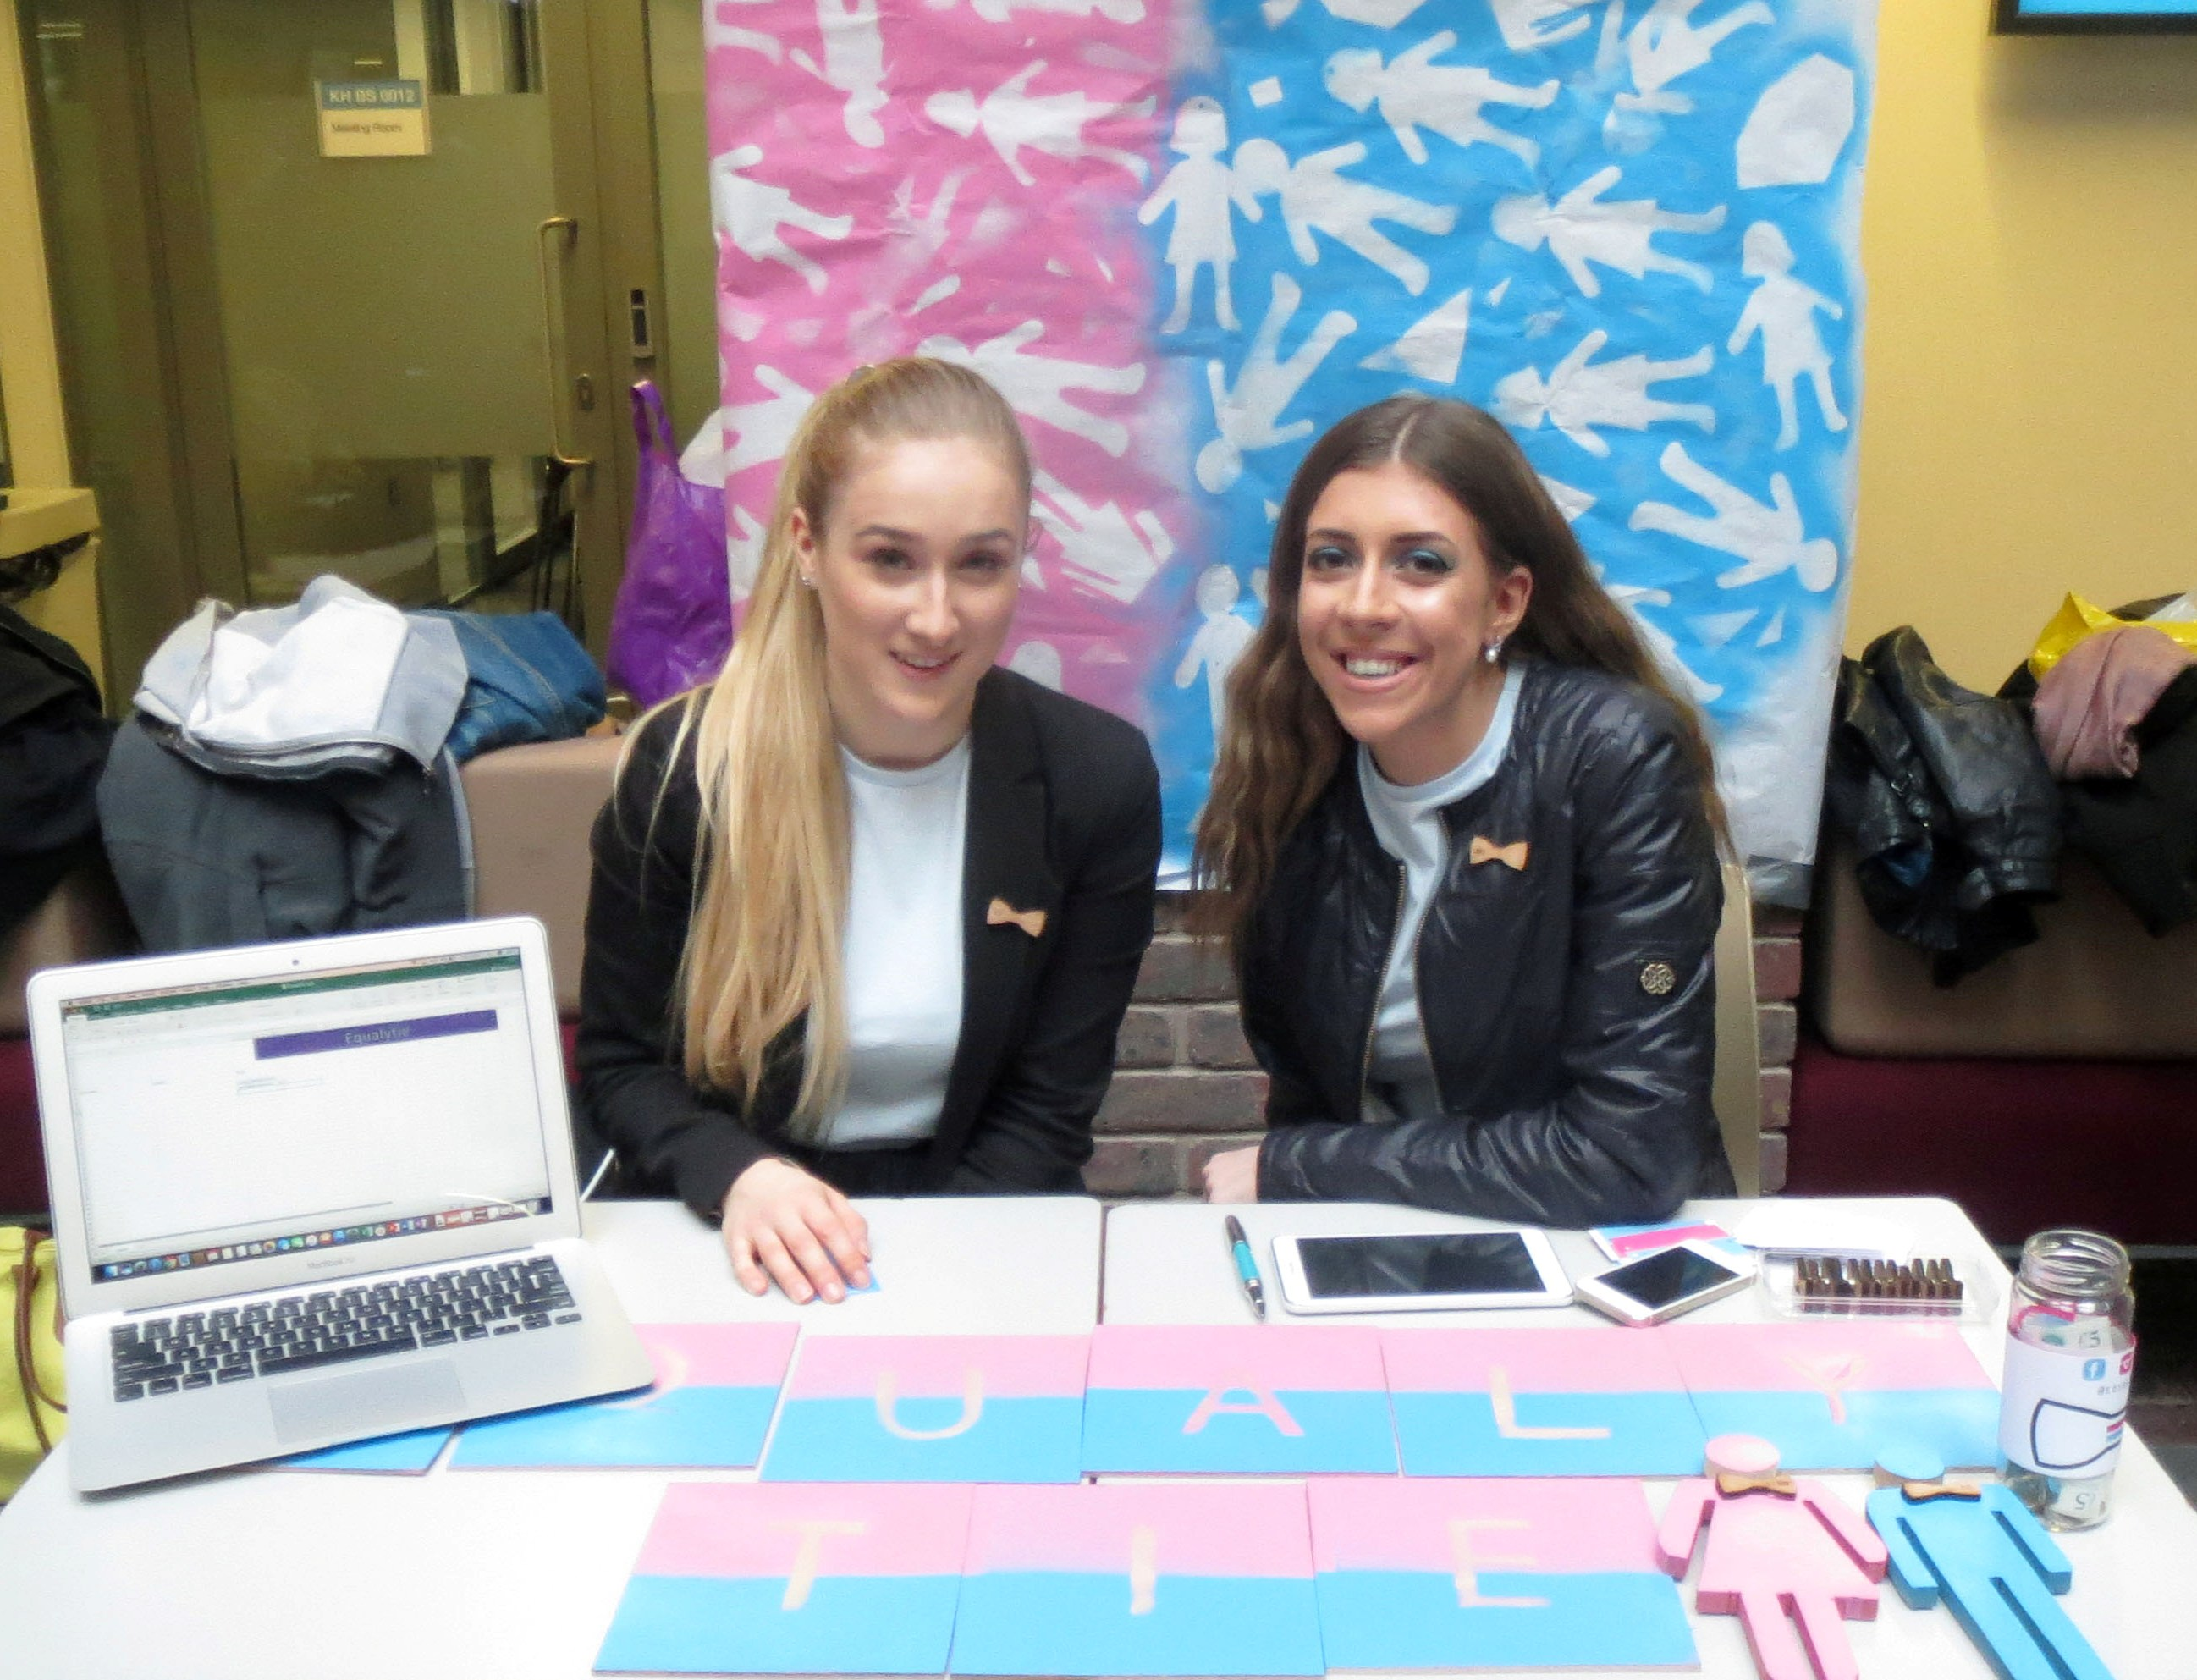 Our first trade fair show, a stand at the Kingston University where we gathered one of the first user testings.